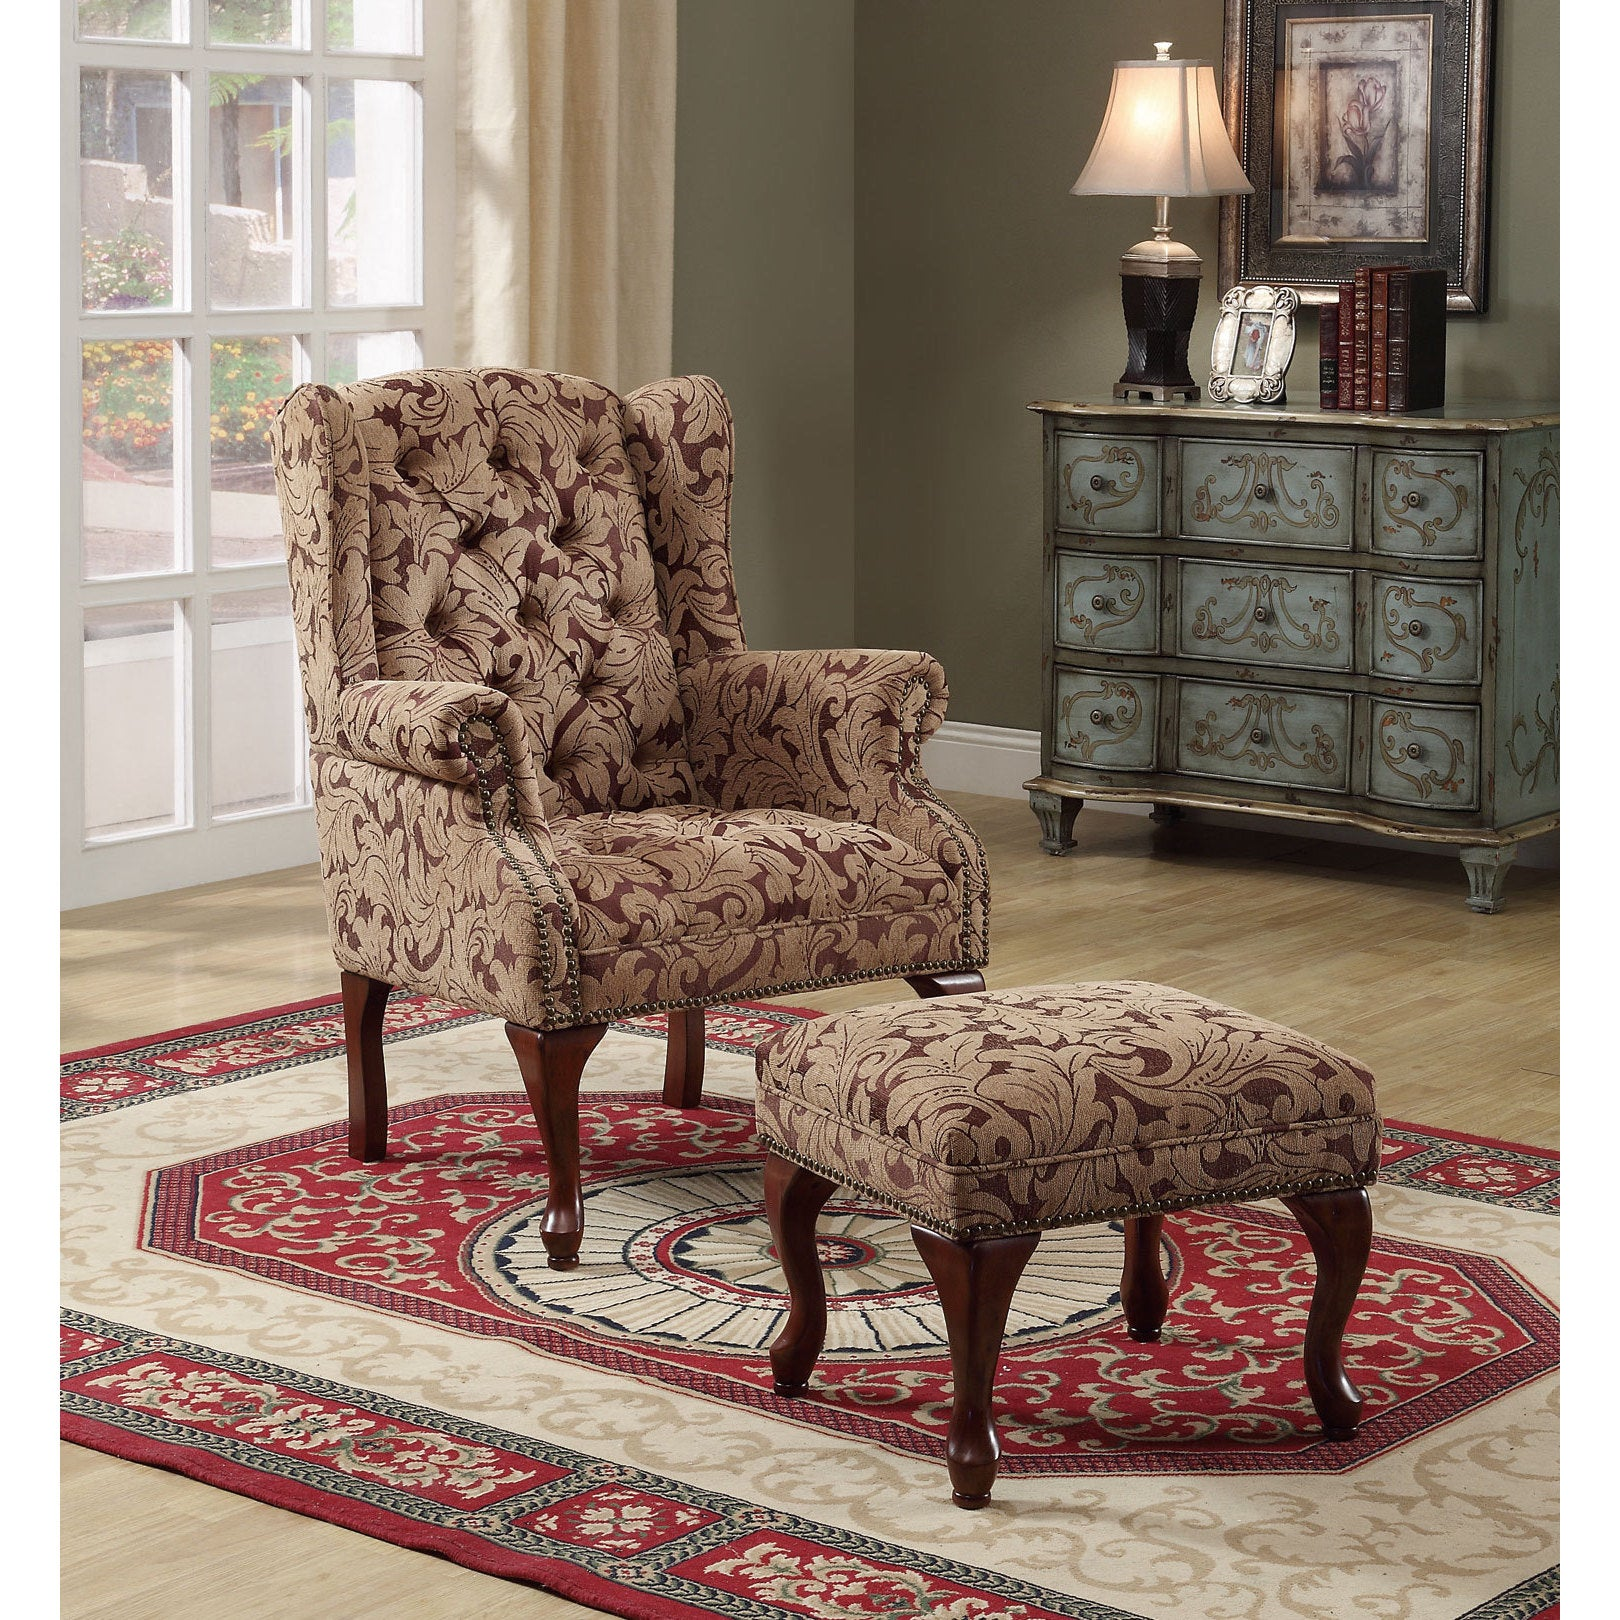 Coaster Furniture Floral Button Tufted Wing Chair and Ott...